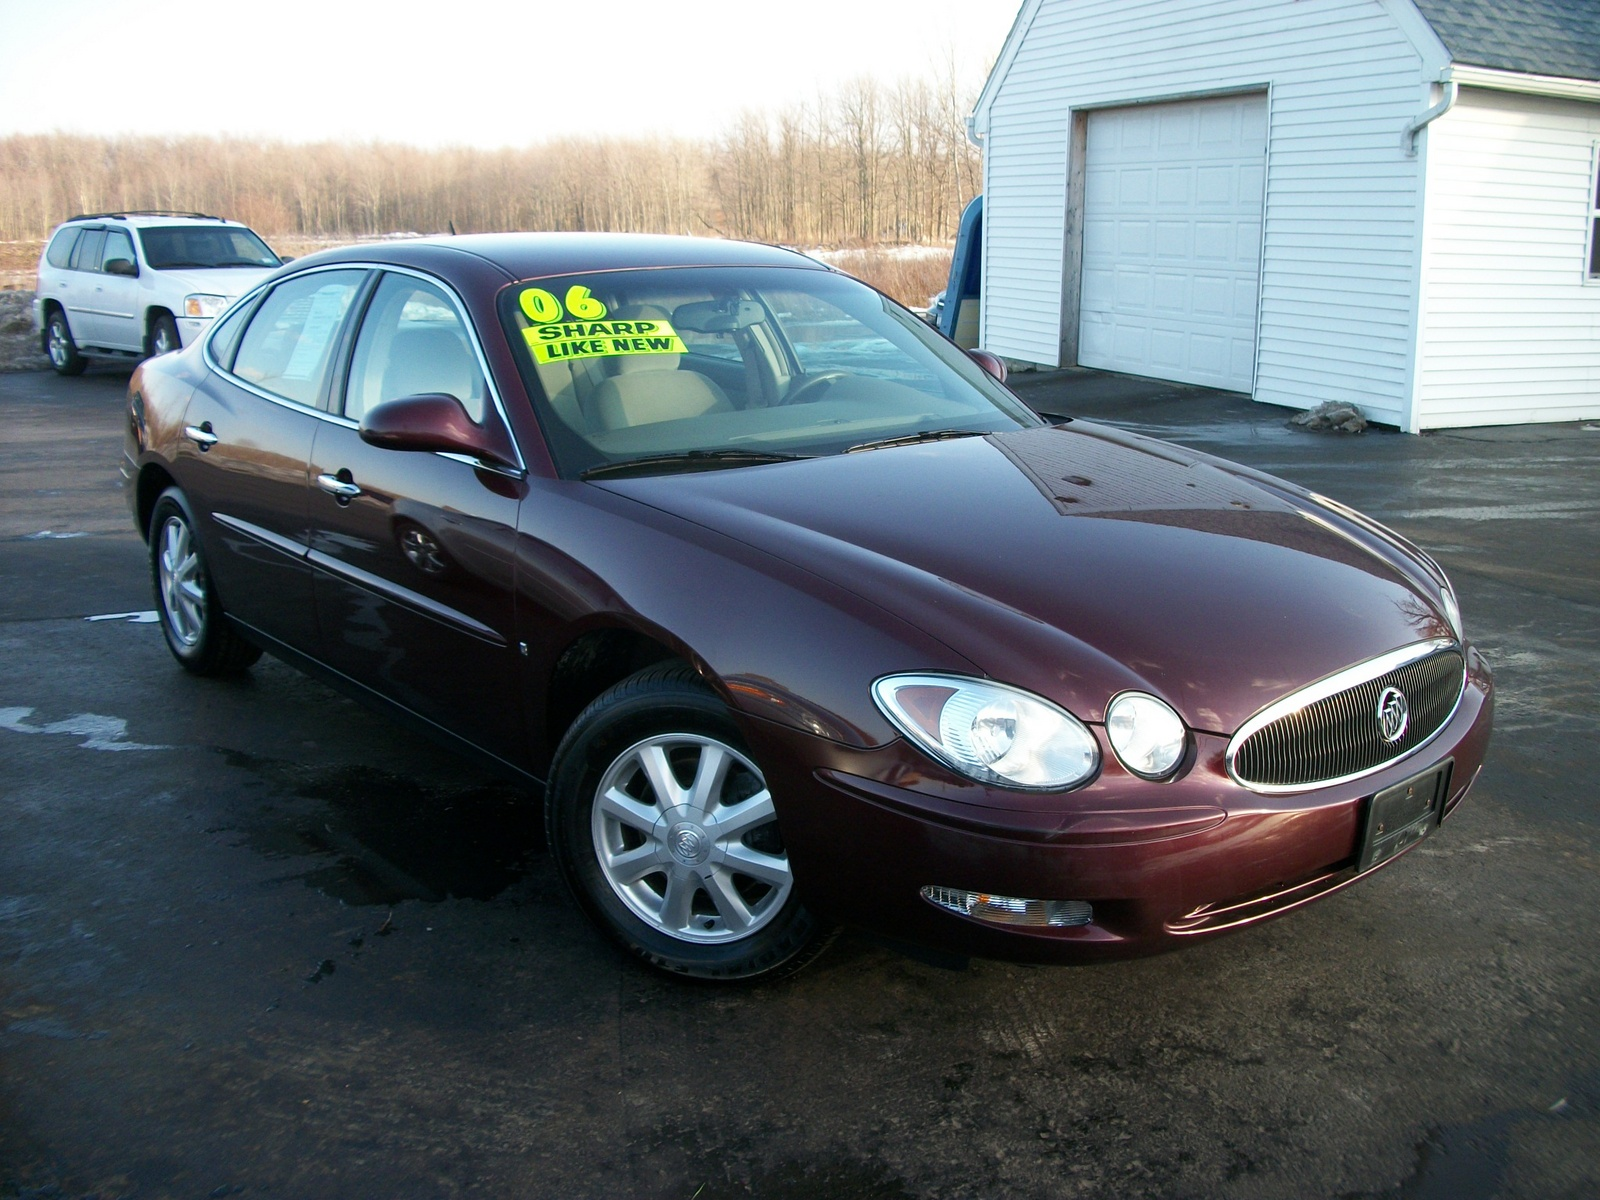 Buick Lacrosse Cx Pic on 2007 Buick Lacrosse Cxl Reviews